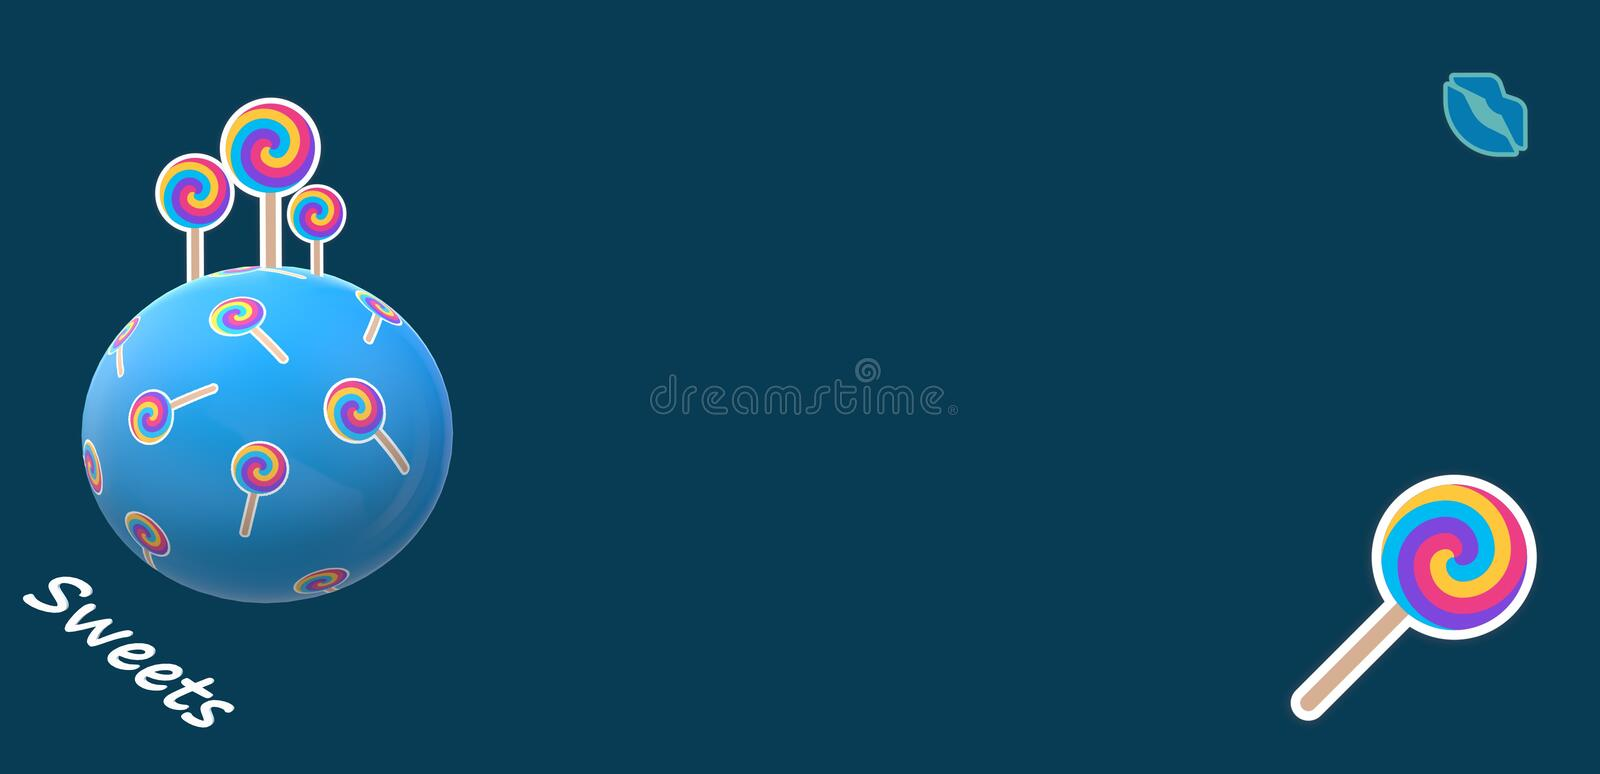 Lollipops planet with dark blue background stock images